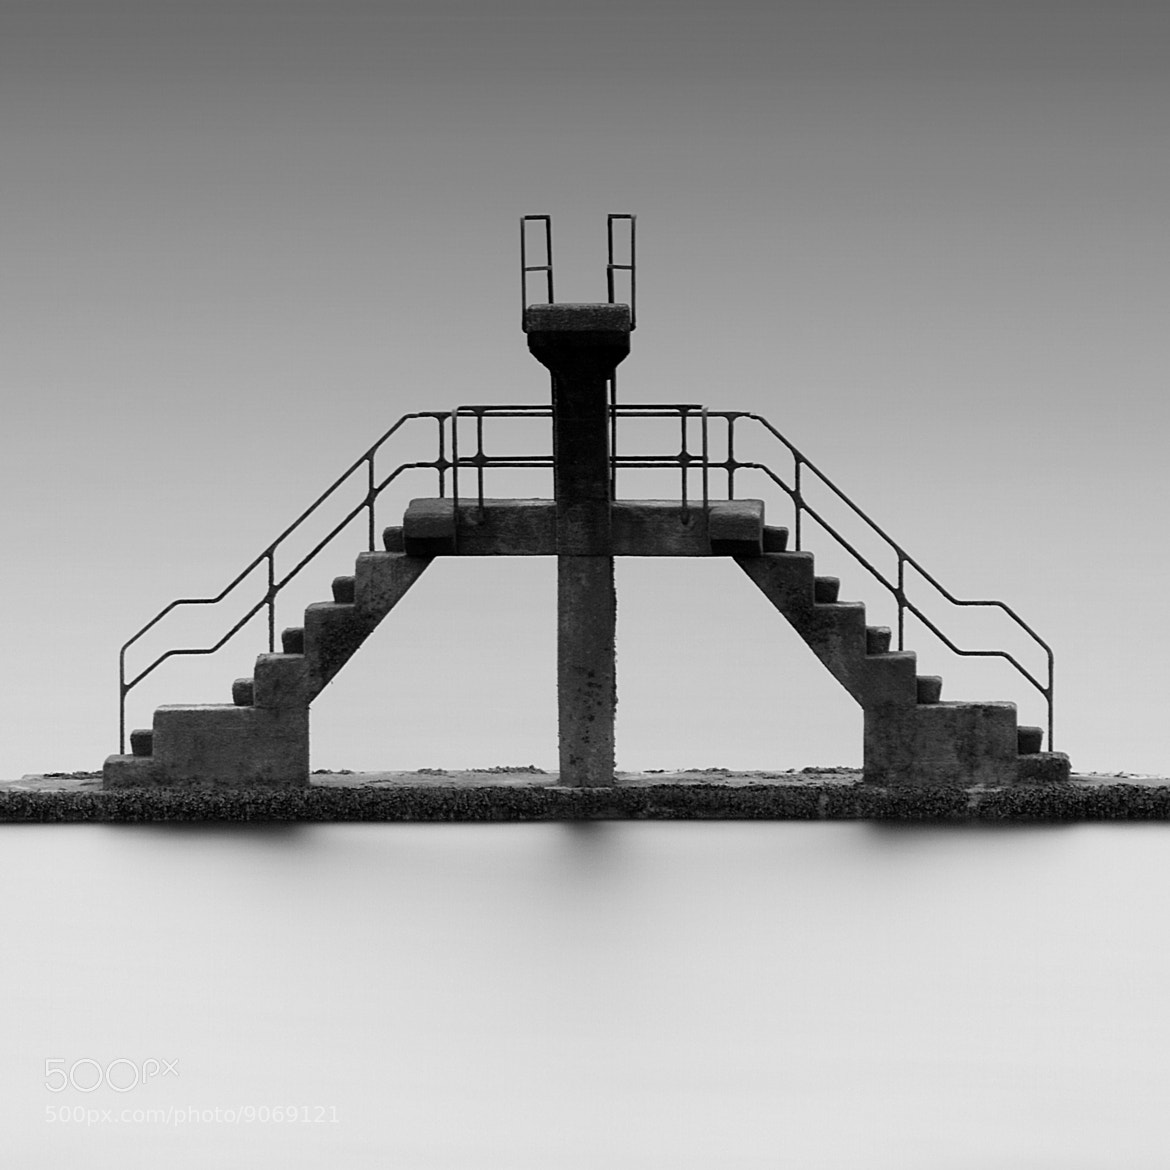 Photograph Diving Board by Sharon Harmeston on 500px